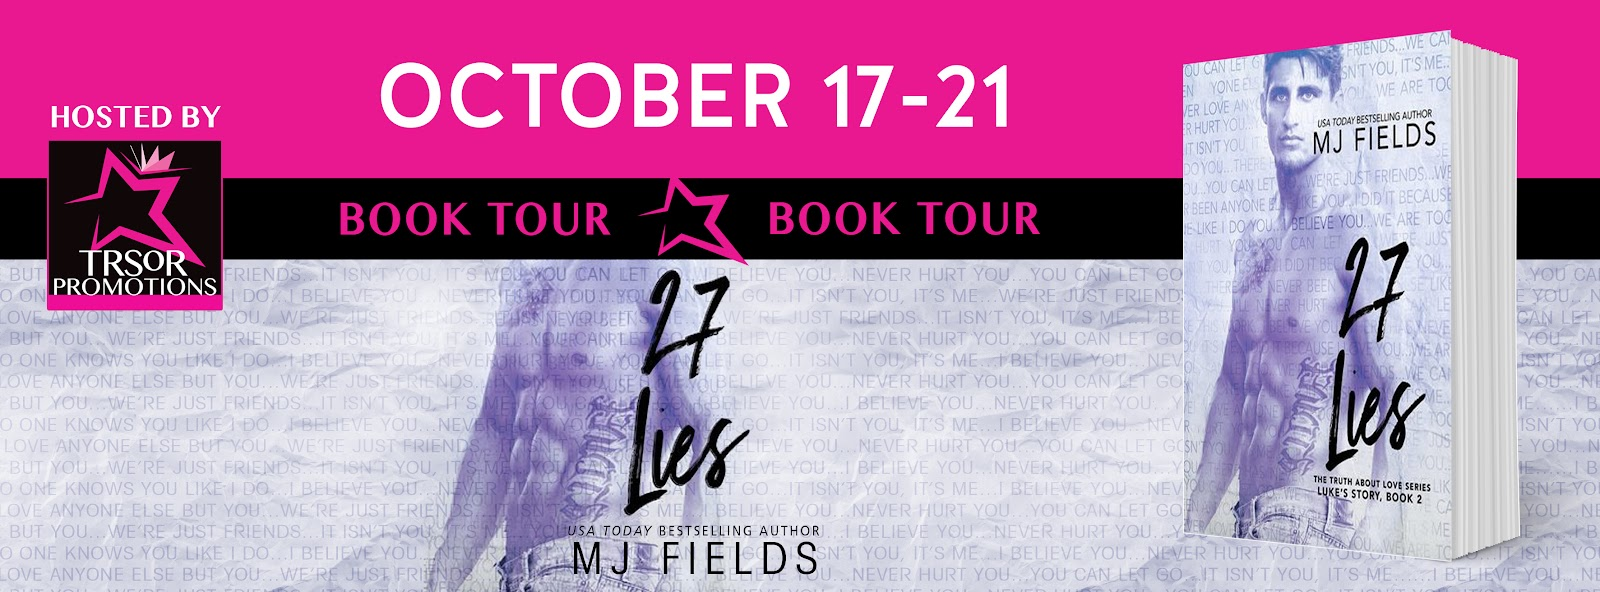 27LIES_BOOK_TOUR.jpg